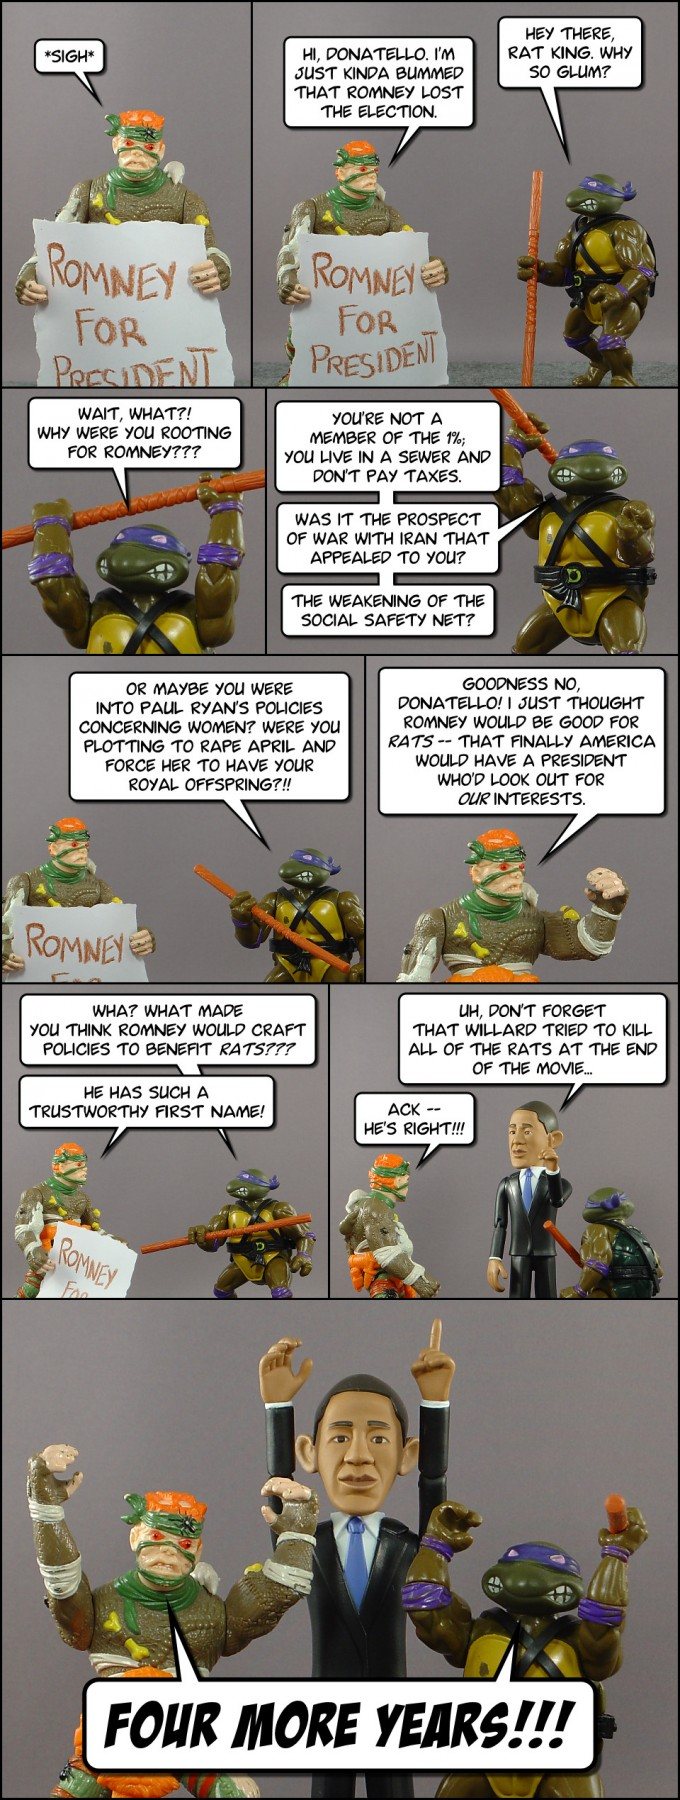 Dusty Plastic HELL #8: Lord Ha'ntaan's Politics